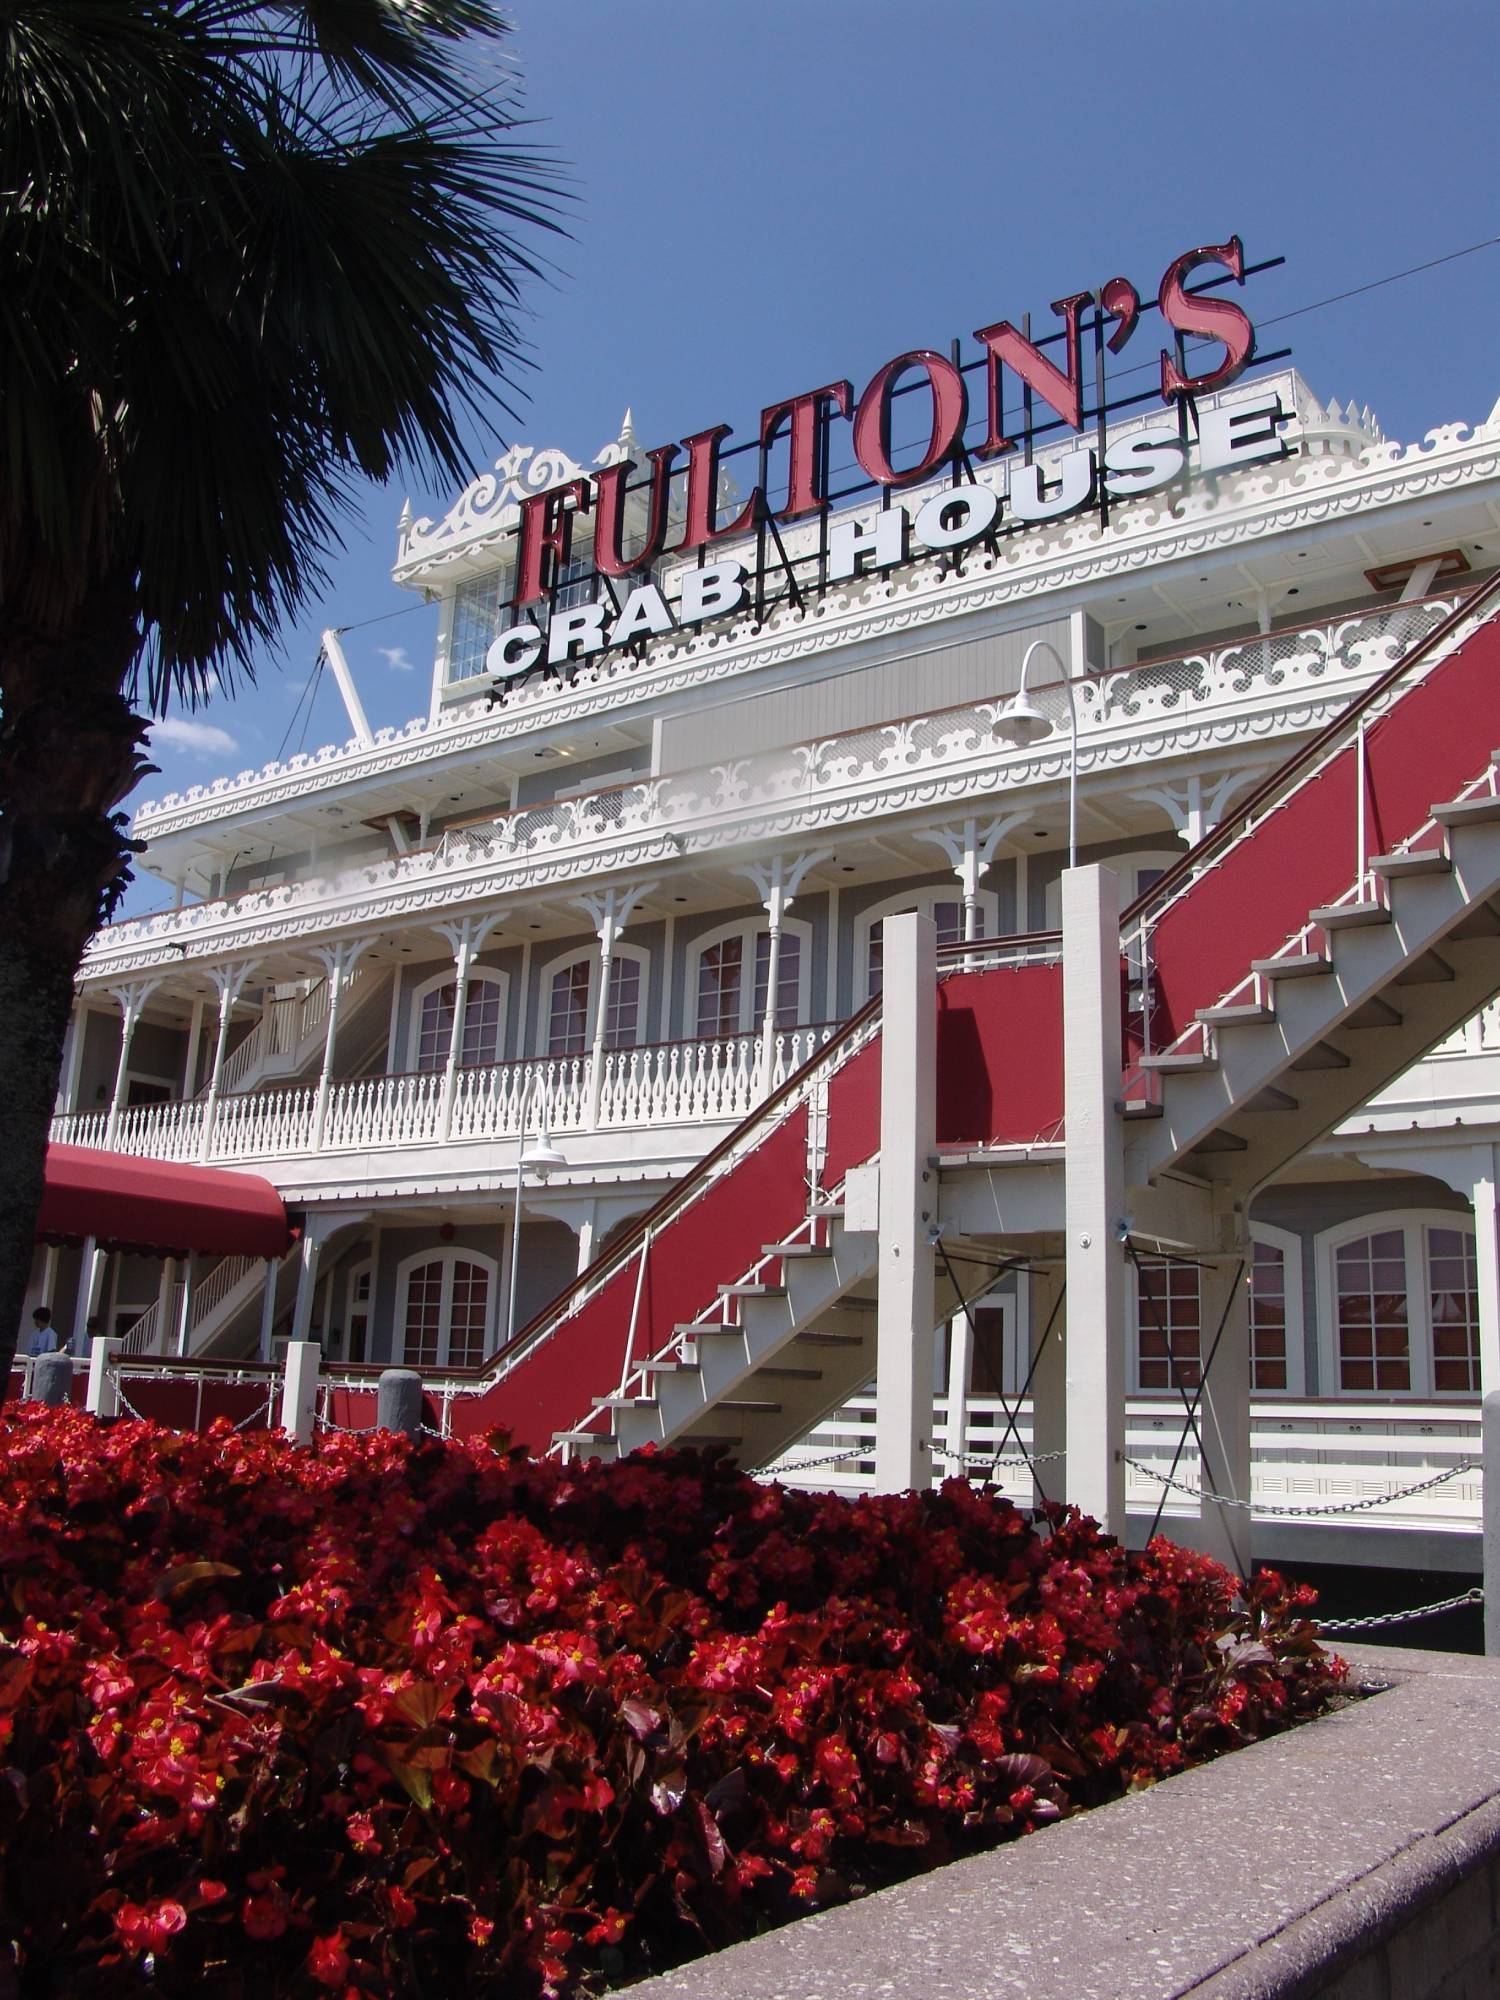 Enjoy a seafood feast at Fulton's Crab House in Downtown Disney | PassPorter.com